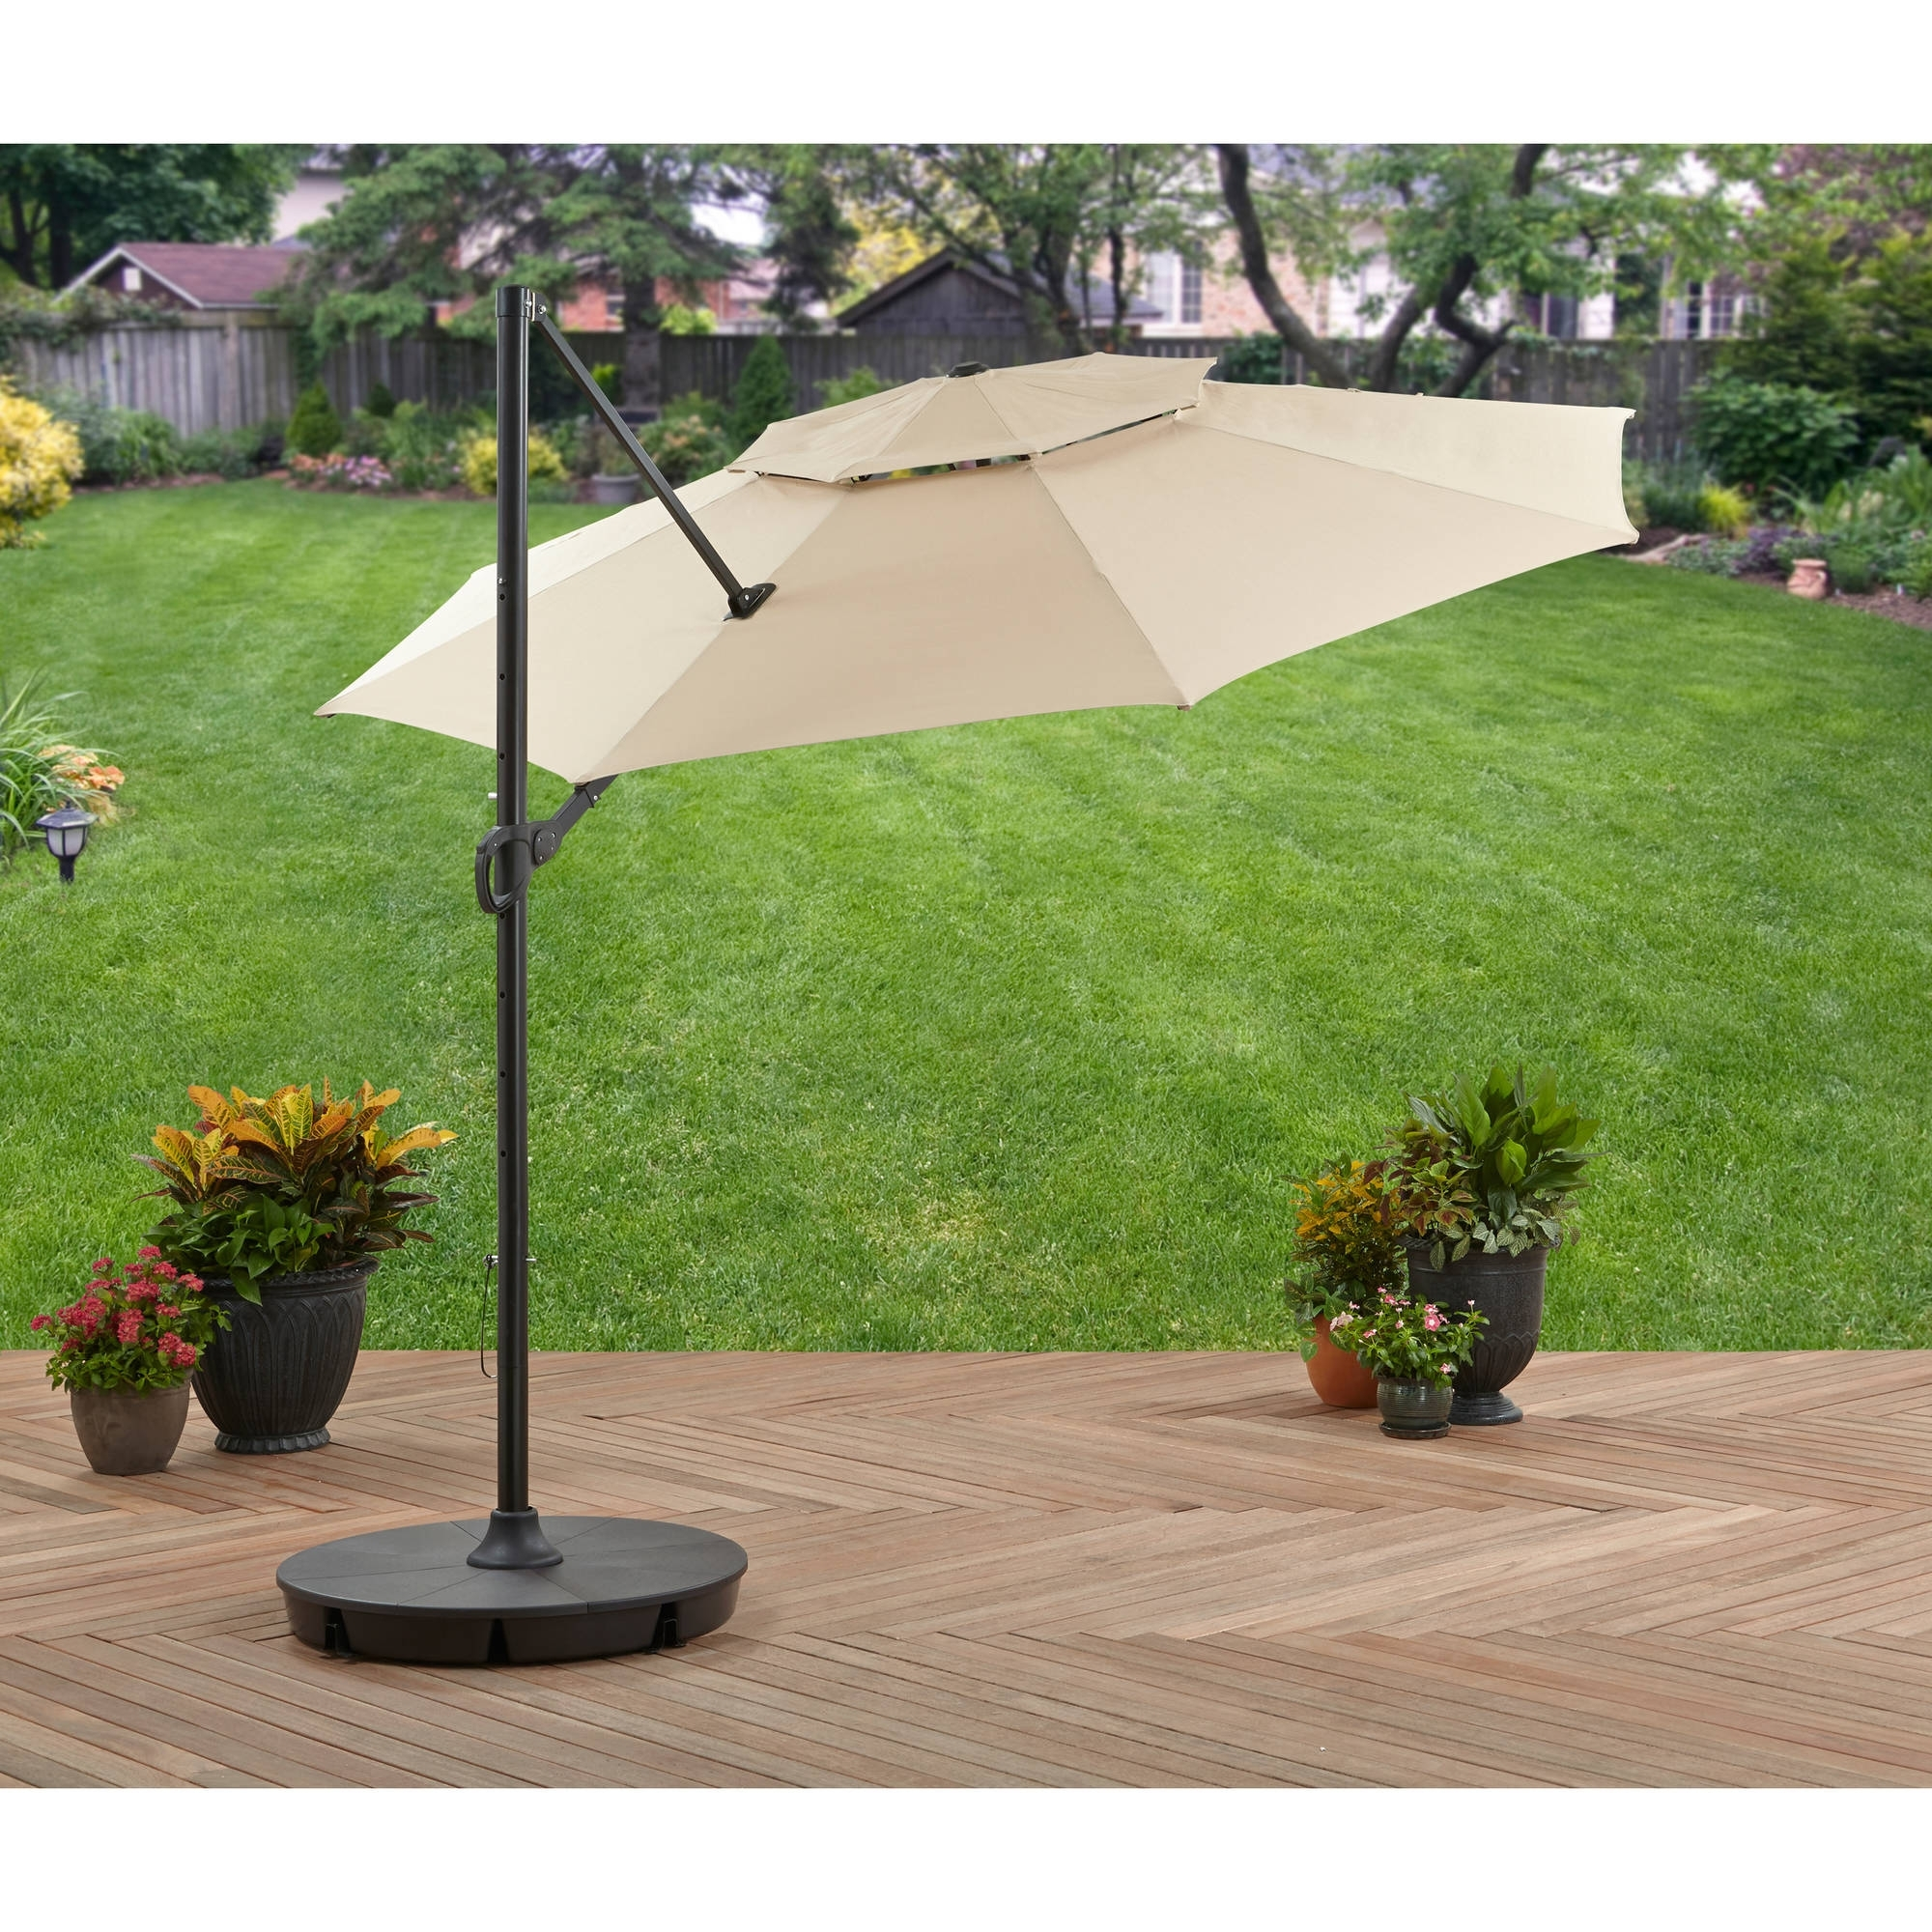 Offset Patio Umbrellas With Base For Popular Better Homes And Gardens 11' Offset Umbrella With Base, Tan (View 13 of 20)